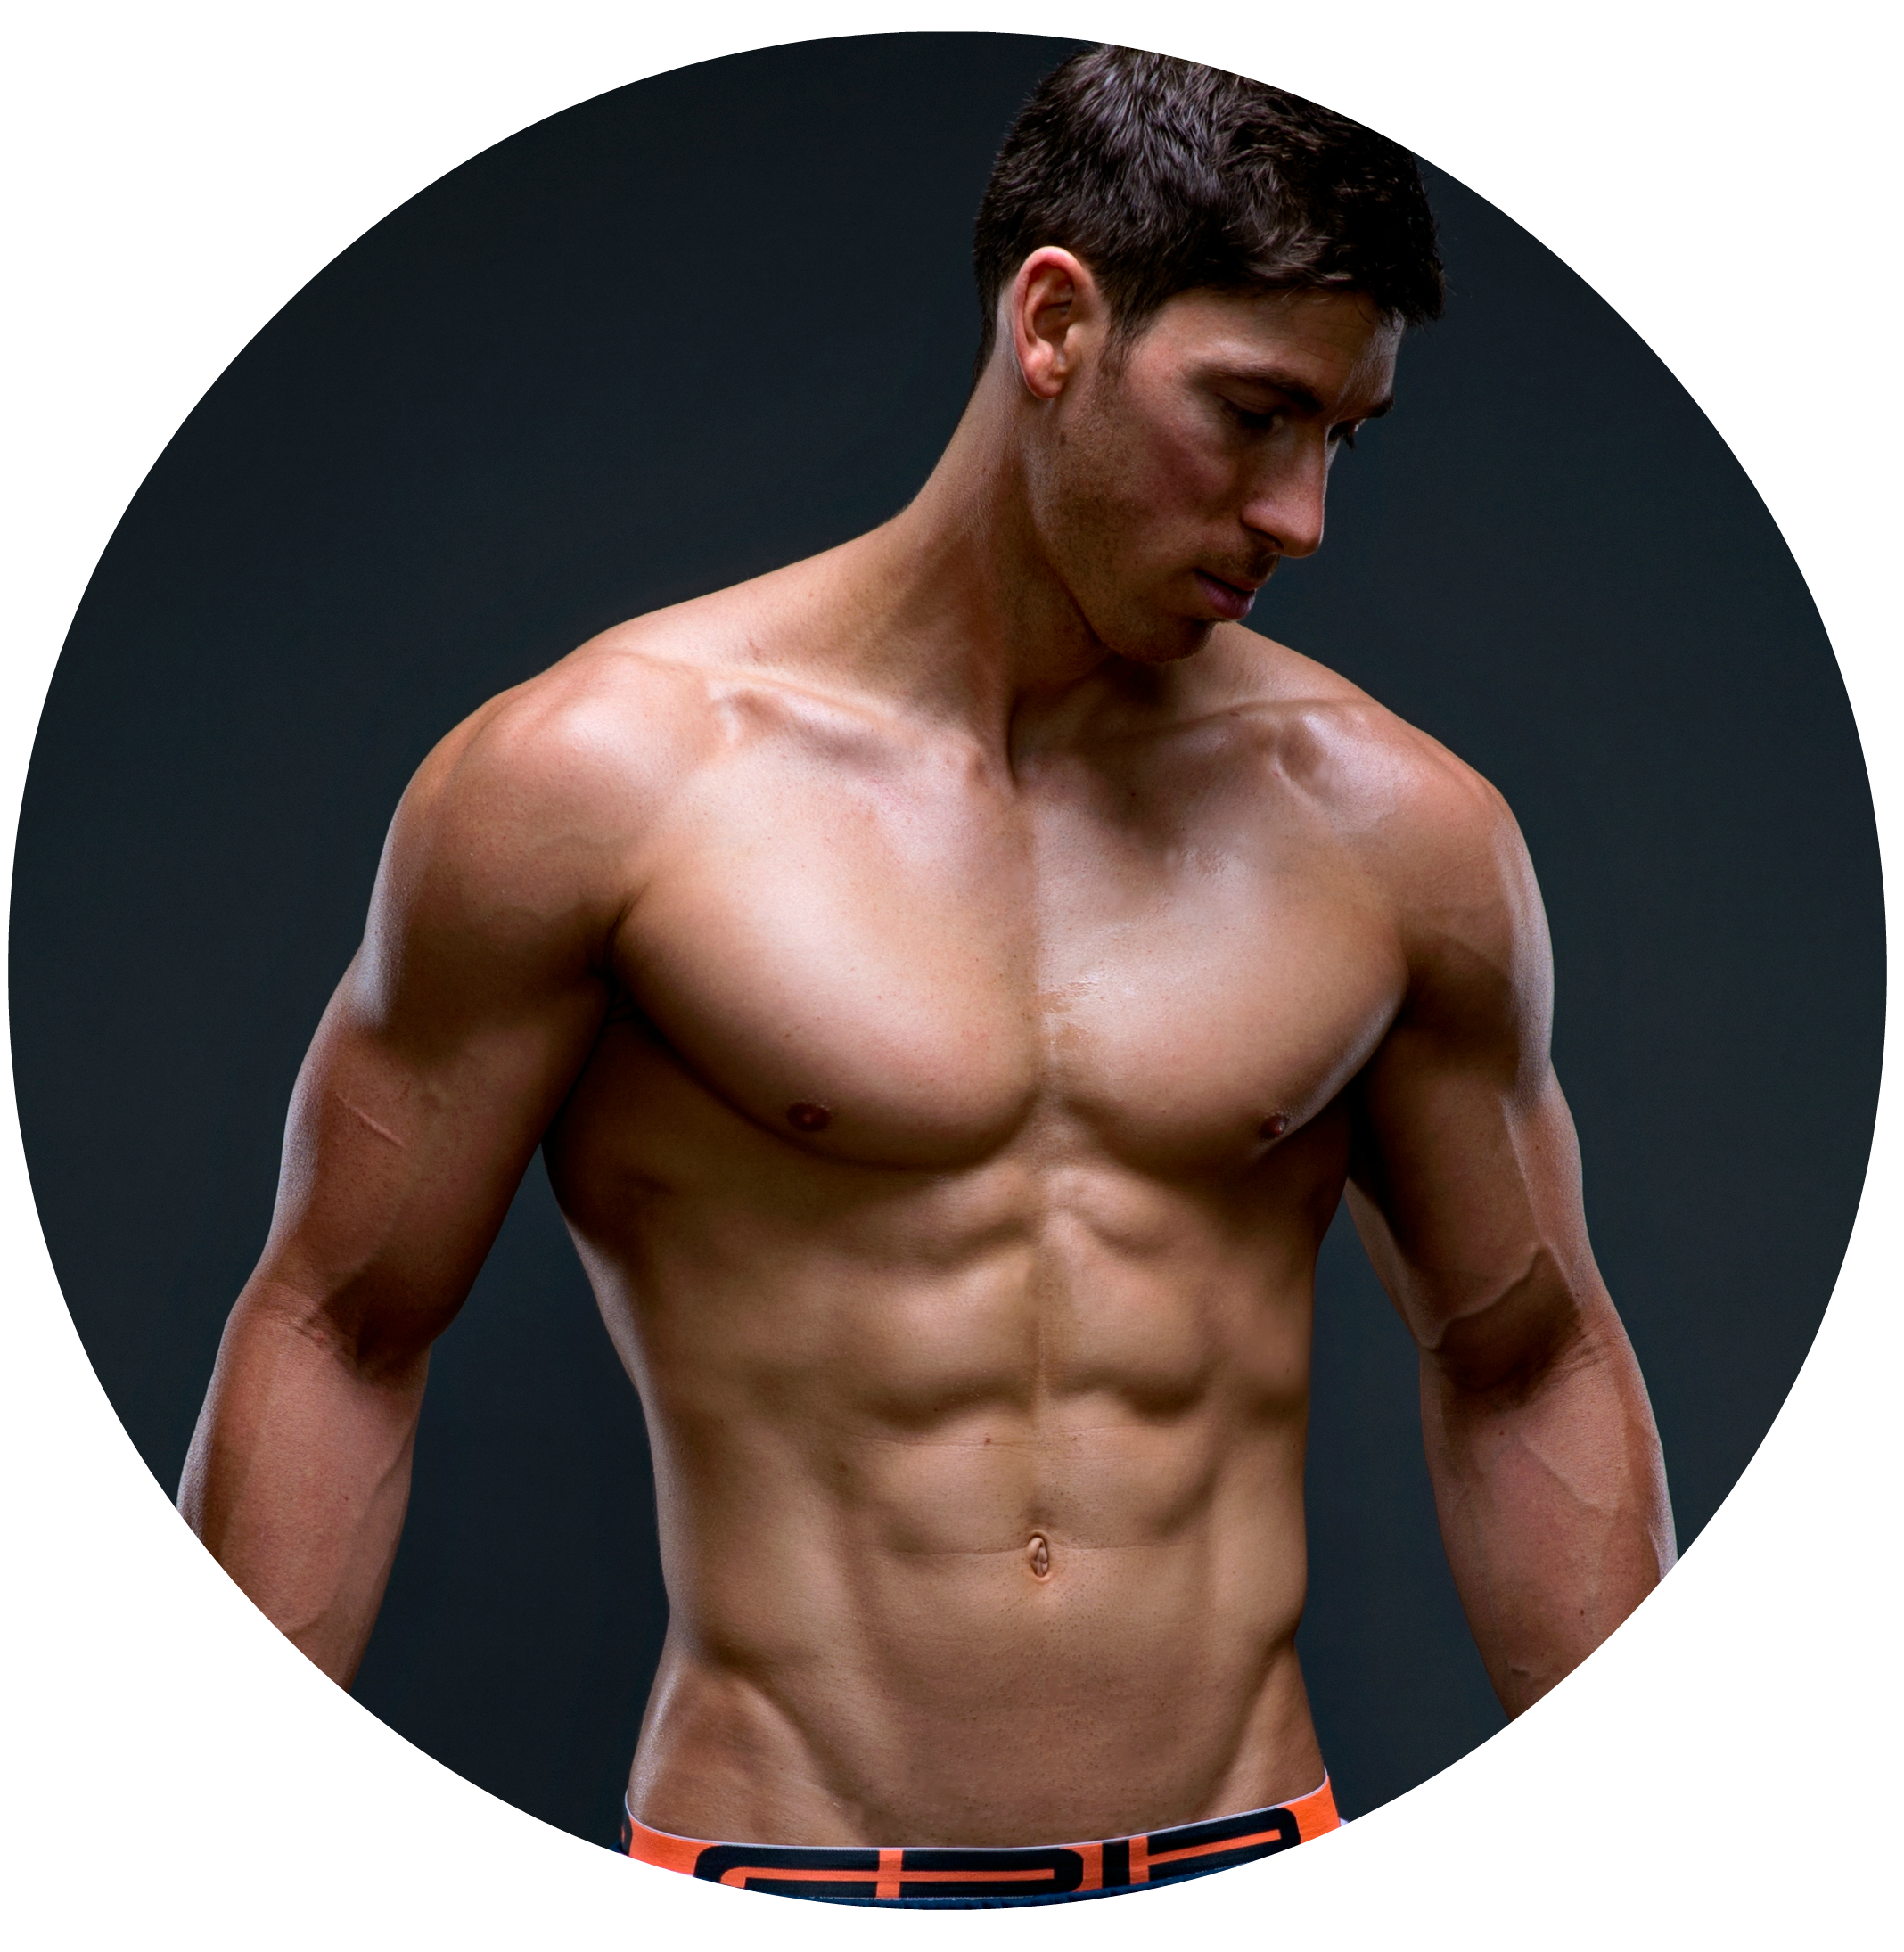 Muscle body gun png. Athletic aesthetic workout vault